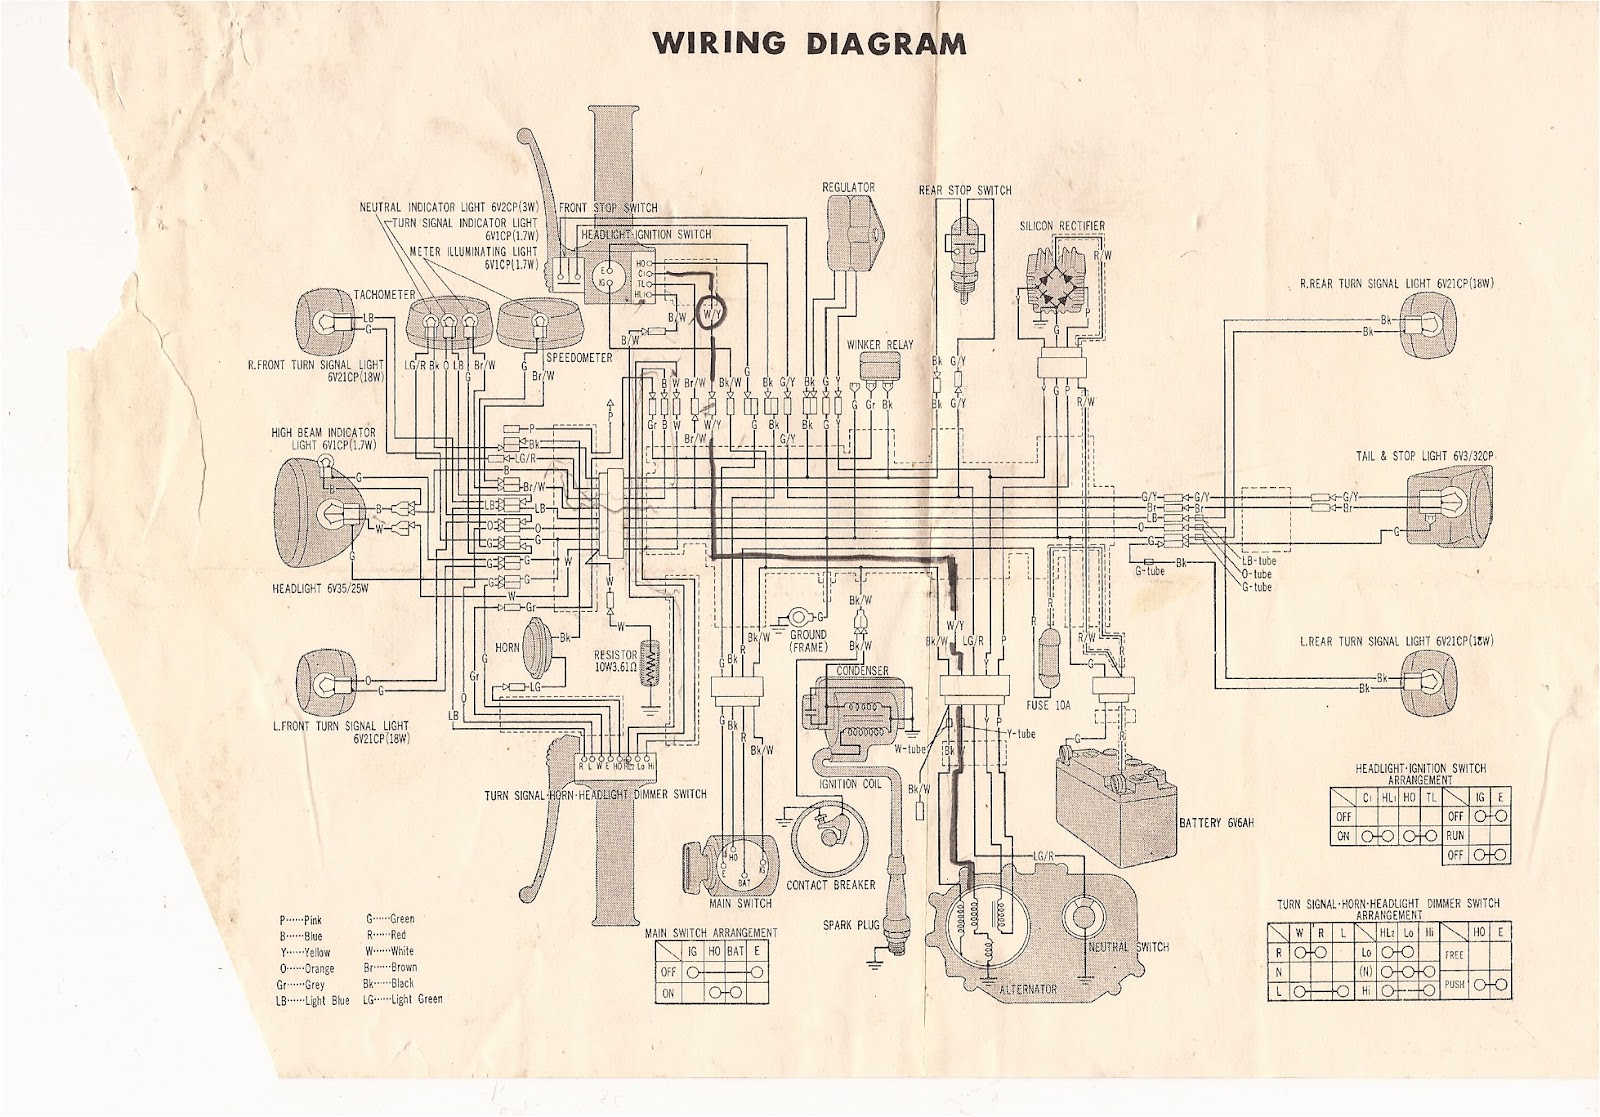 Honda Ascot Wiring Diagram Electrical Schematics Motorcycles Ft500 Diagrams Motorcycle